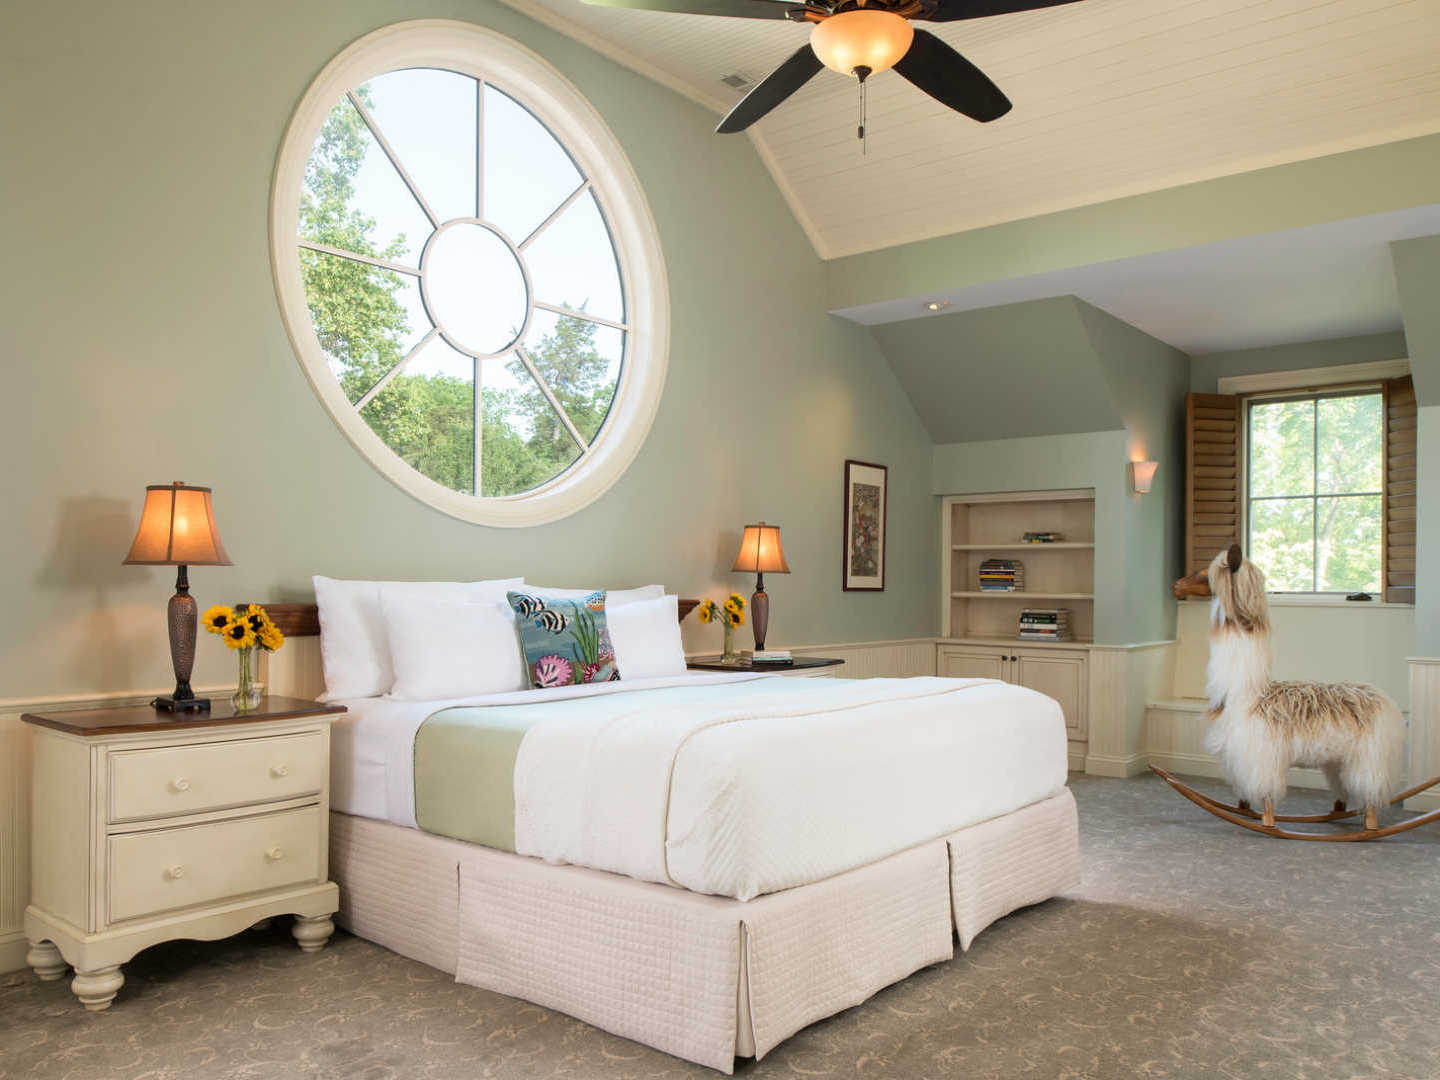 A bedroom with a bed in a room at Great Oak Manor.